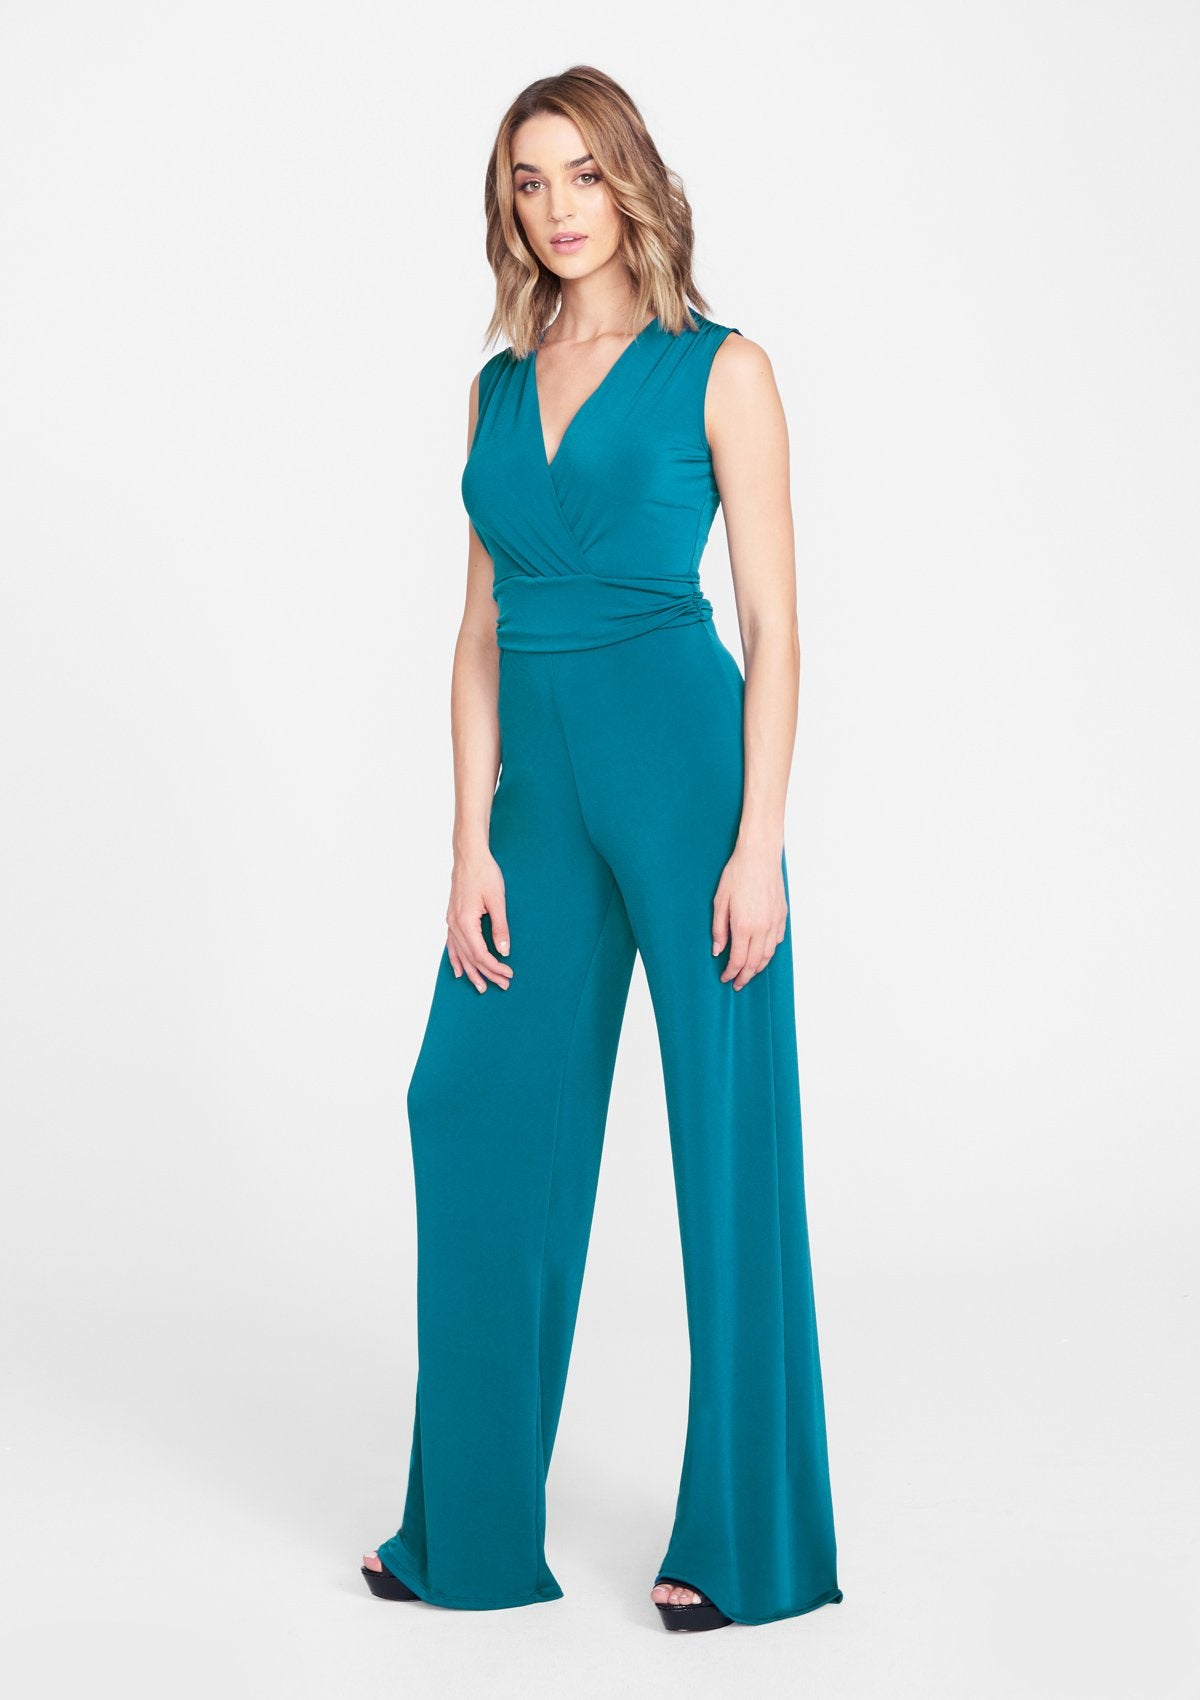 Alloy Apparel Tall Jackie Jumpsuit for Women in Teal Size XL   Polyester